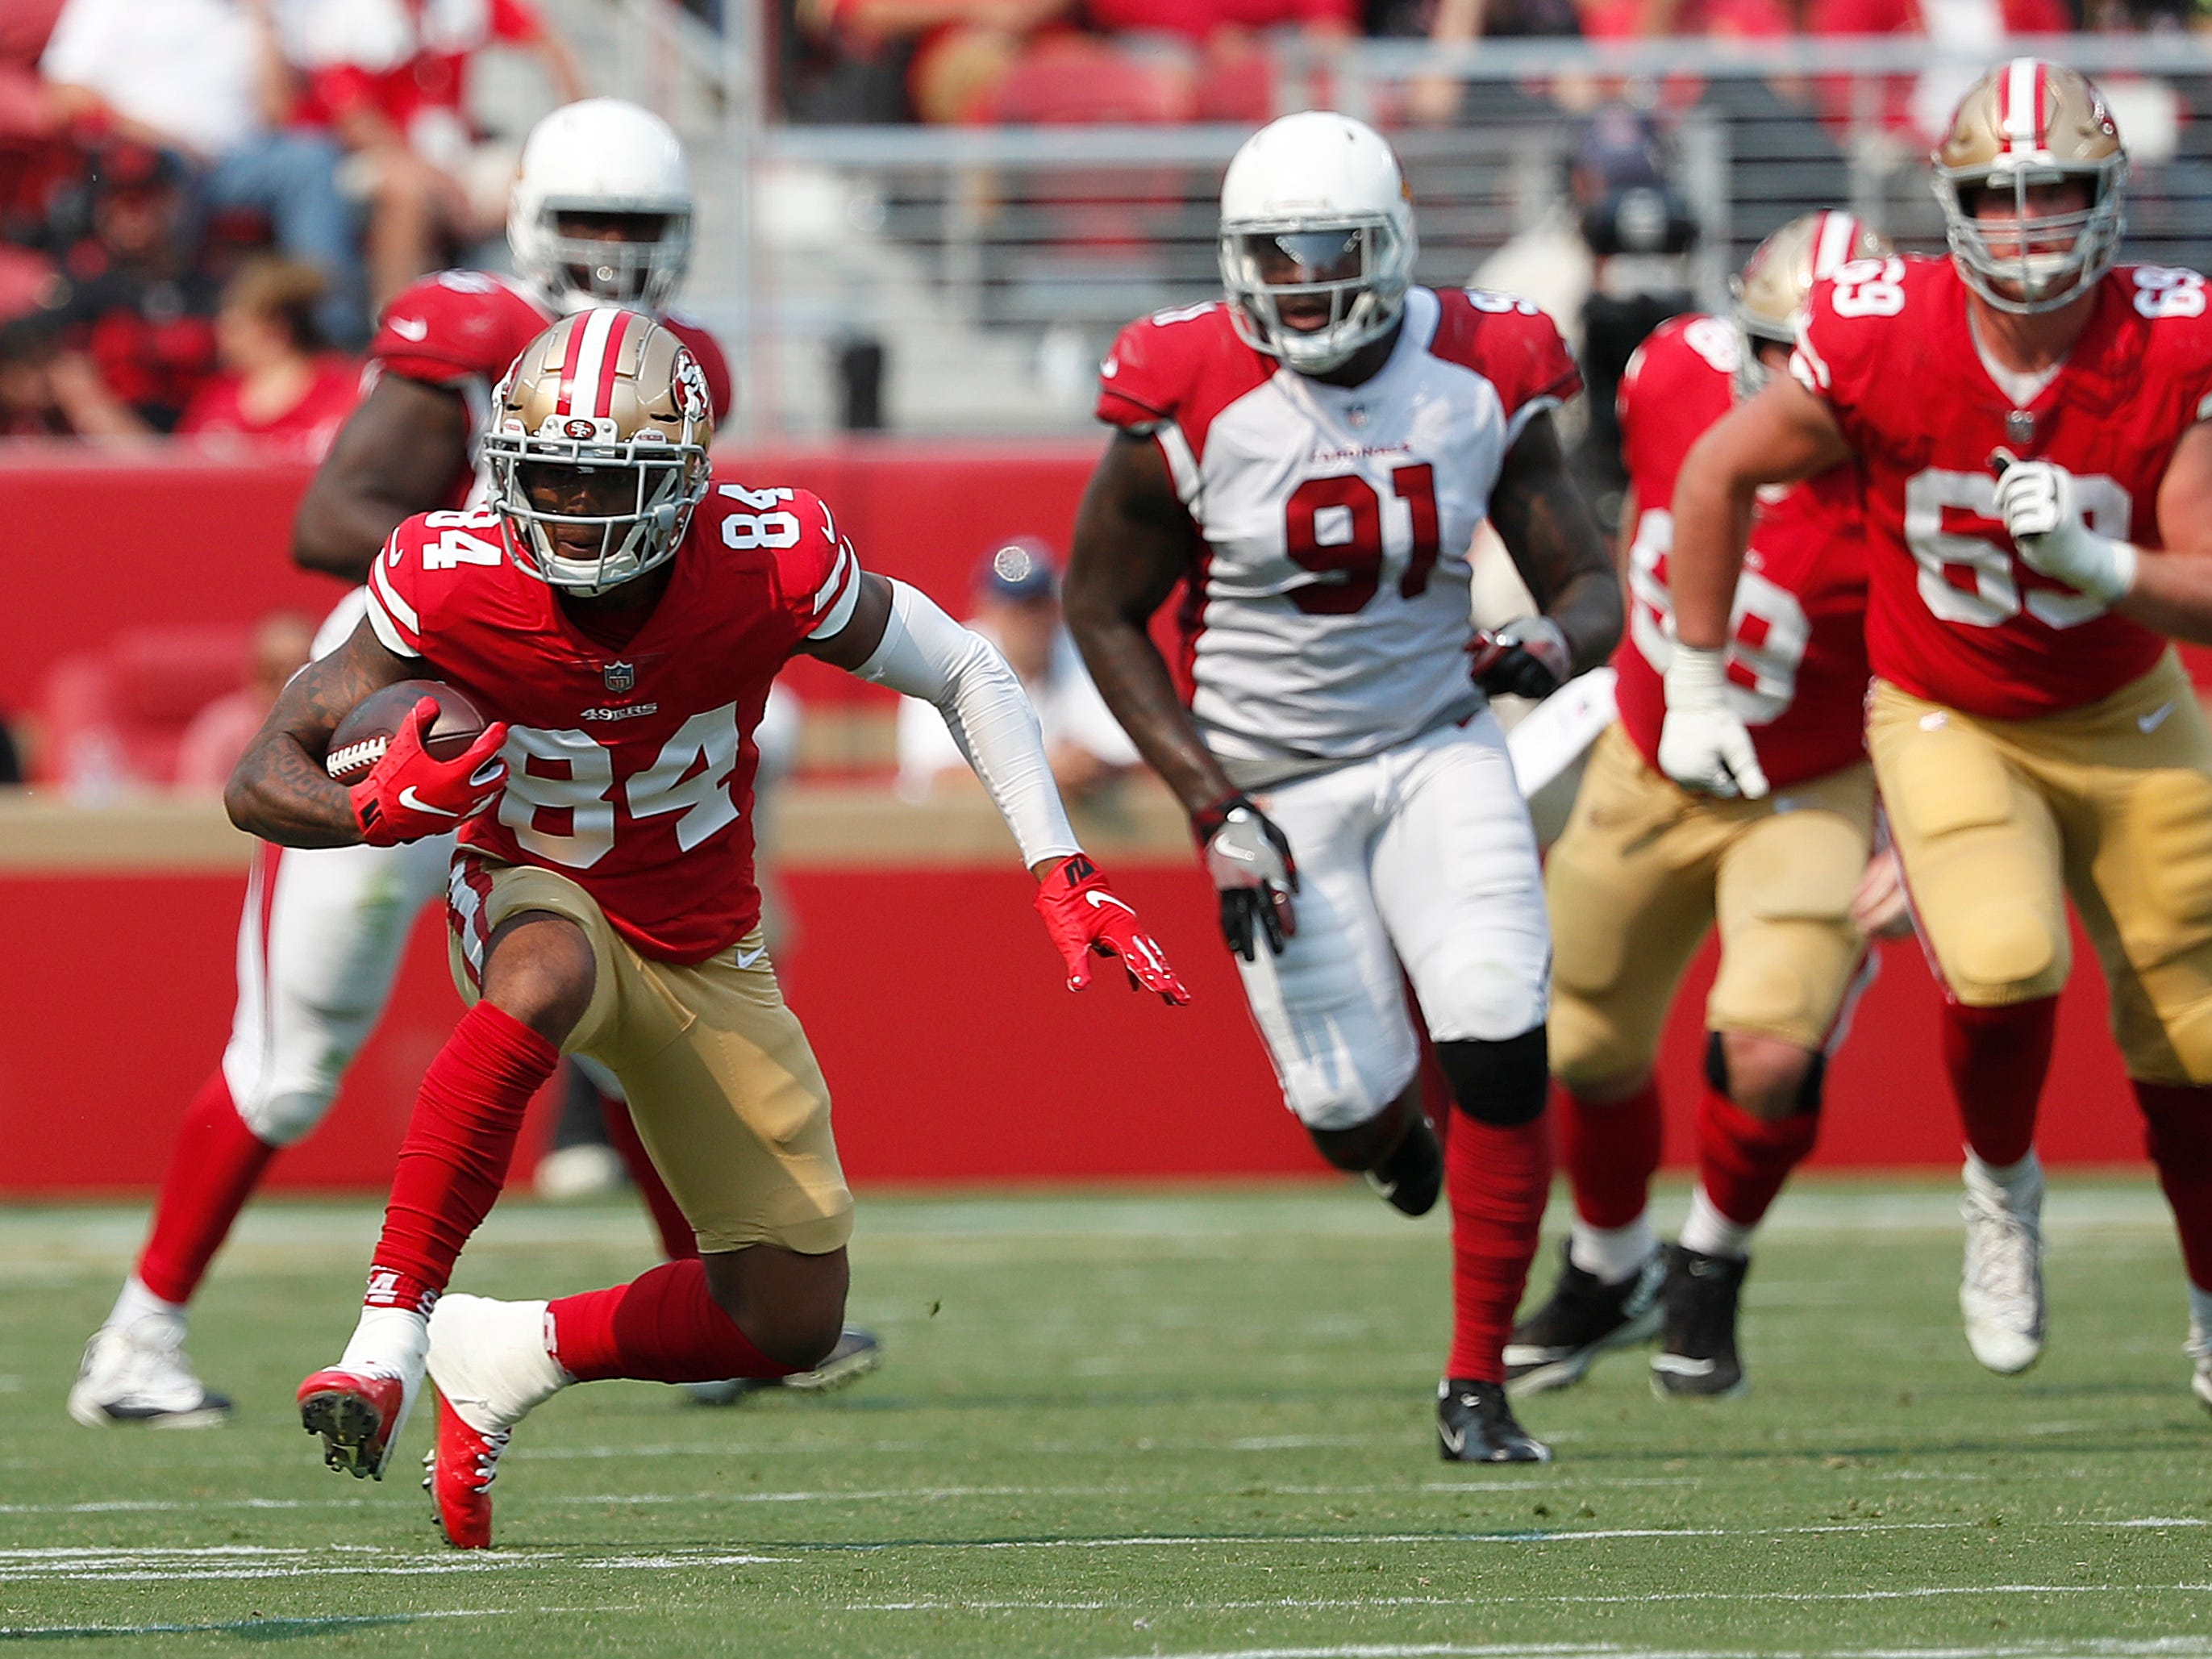 San Francisco 49ers wide receiver Kendrick Bourne (84) runs against the Arizona Cardinals during the first half of an NFL football game in Santa Clara, Calif., Sunday, Oct. 7, 2018.